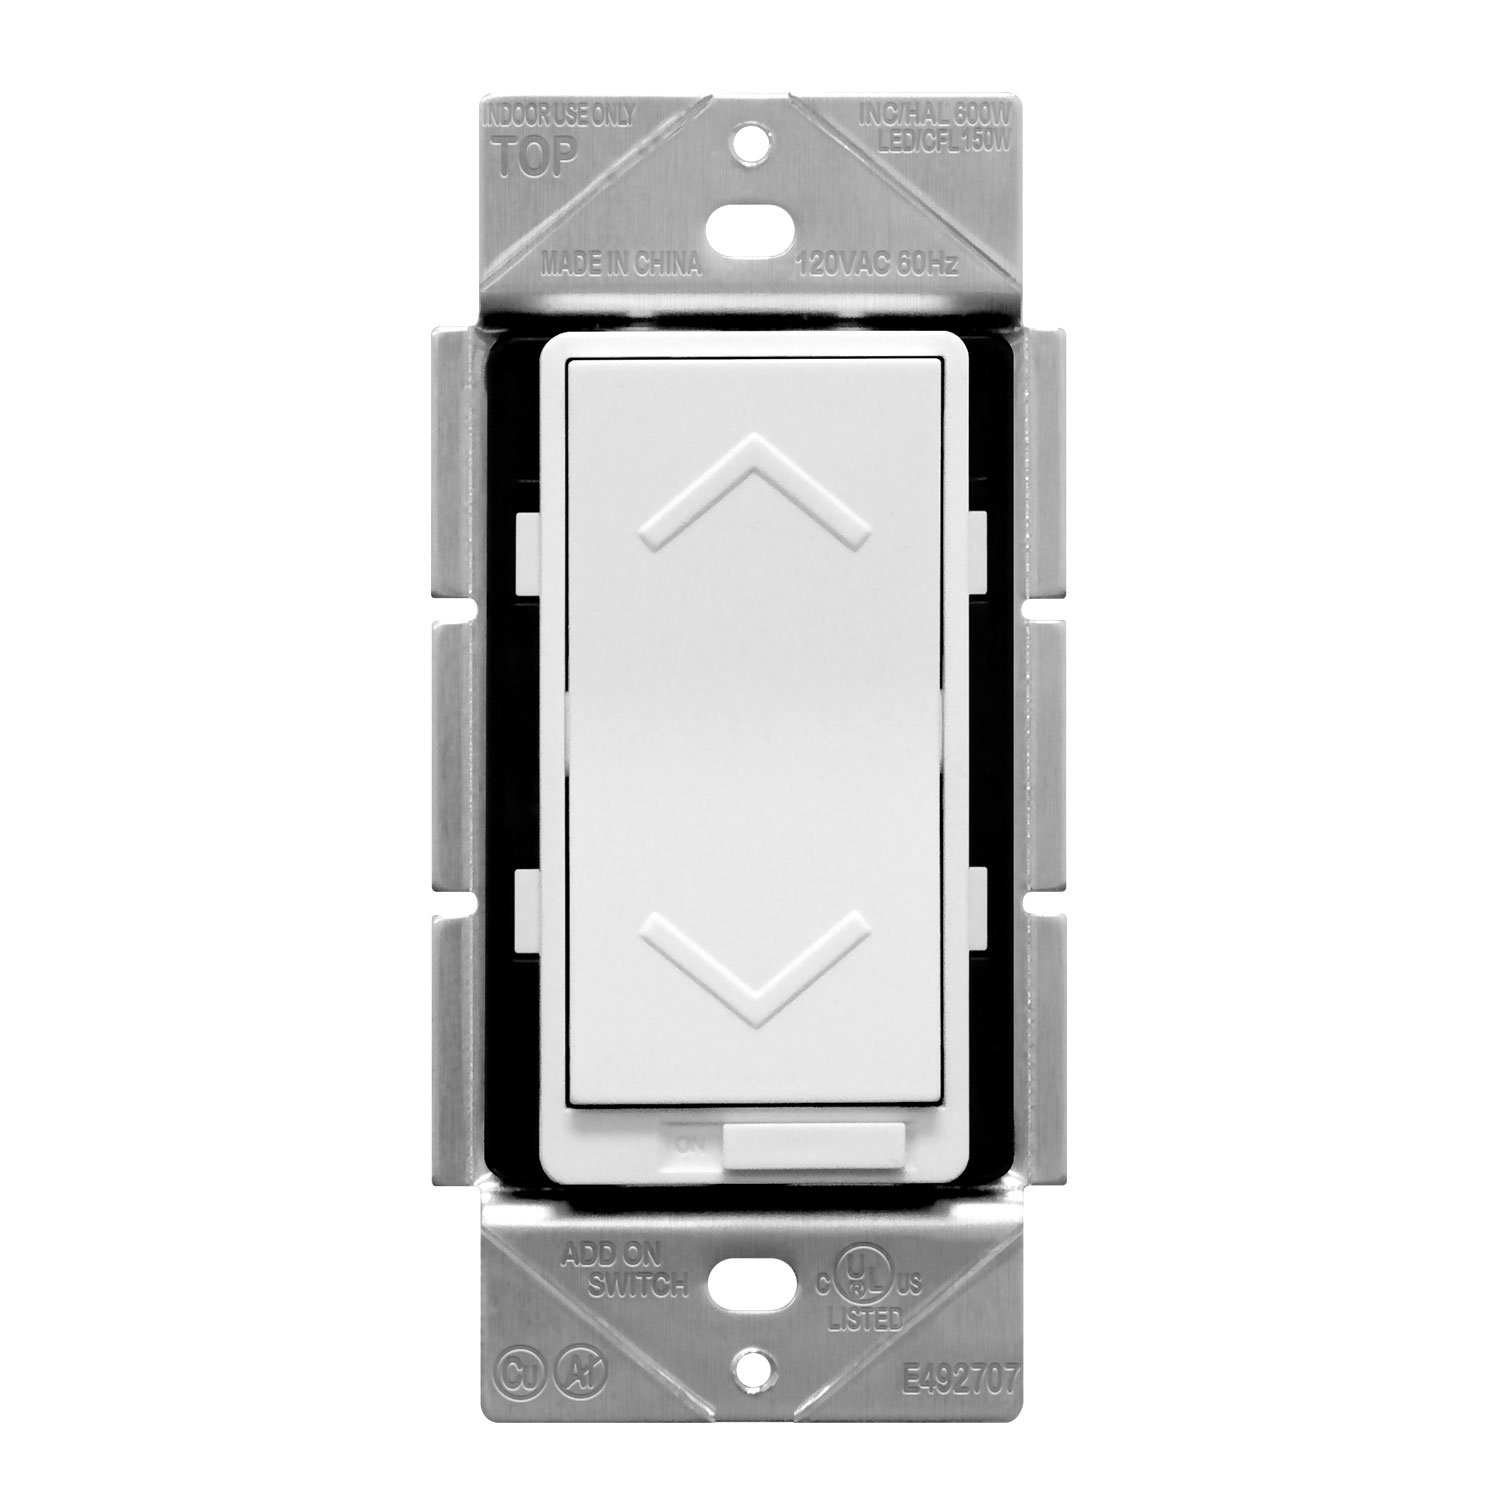 TOPGREENER TGDS-120 120V Dimmer Rocker Switch for LED/CFL, Incandescent/Halogen and Fluorescent | Single-pole, 3-Way, Air-Gap, Neutral Wire Required | White